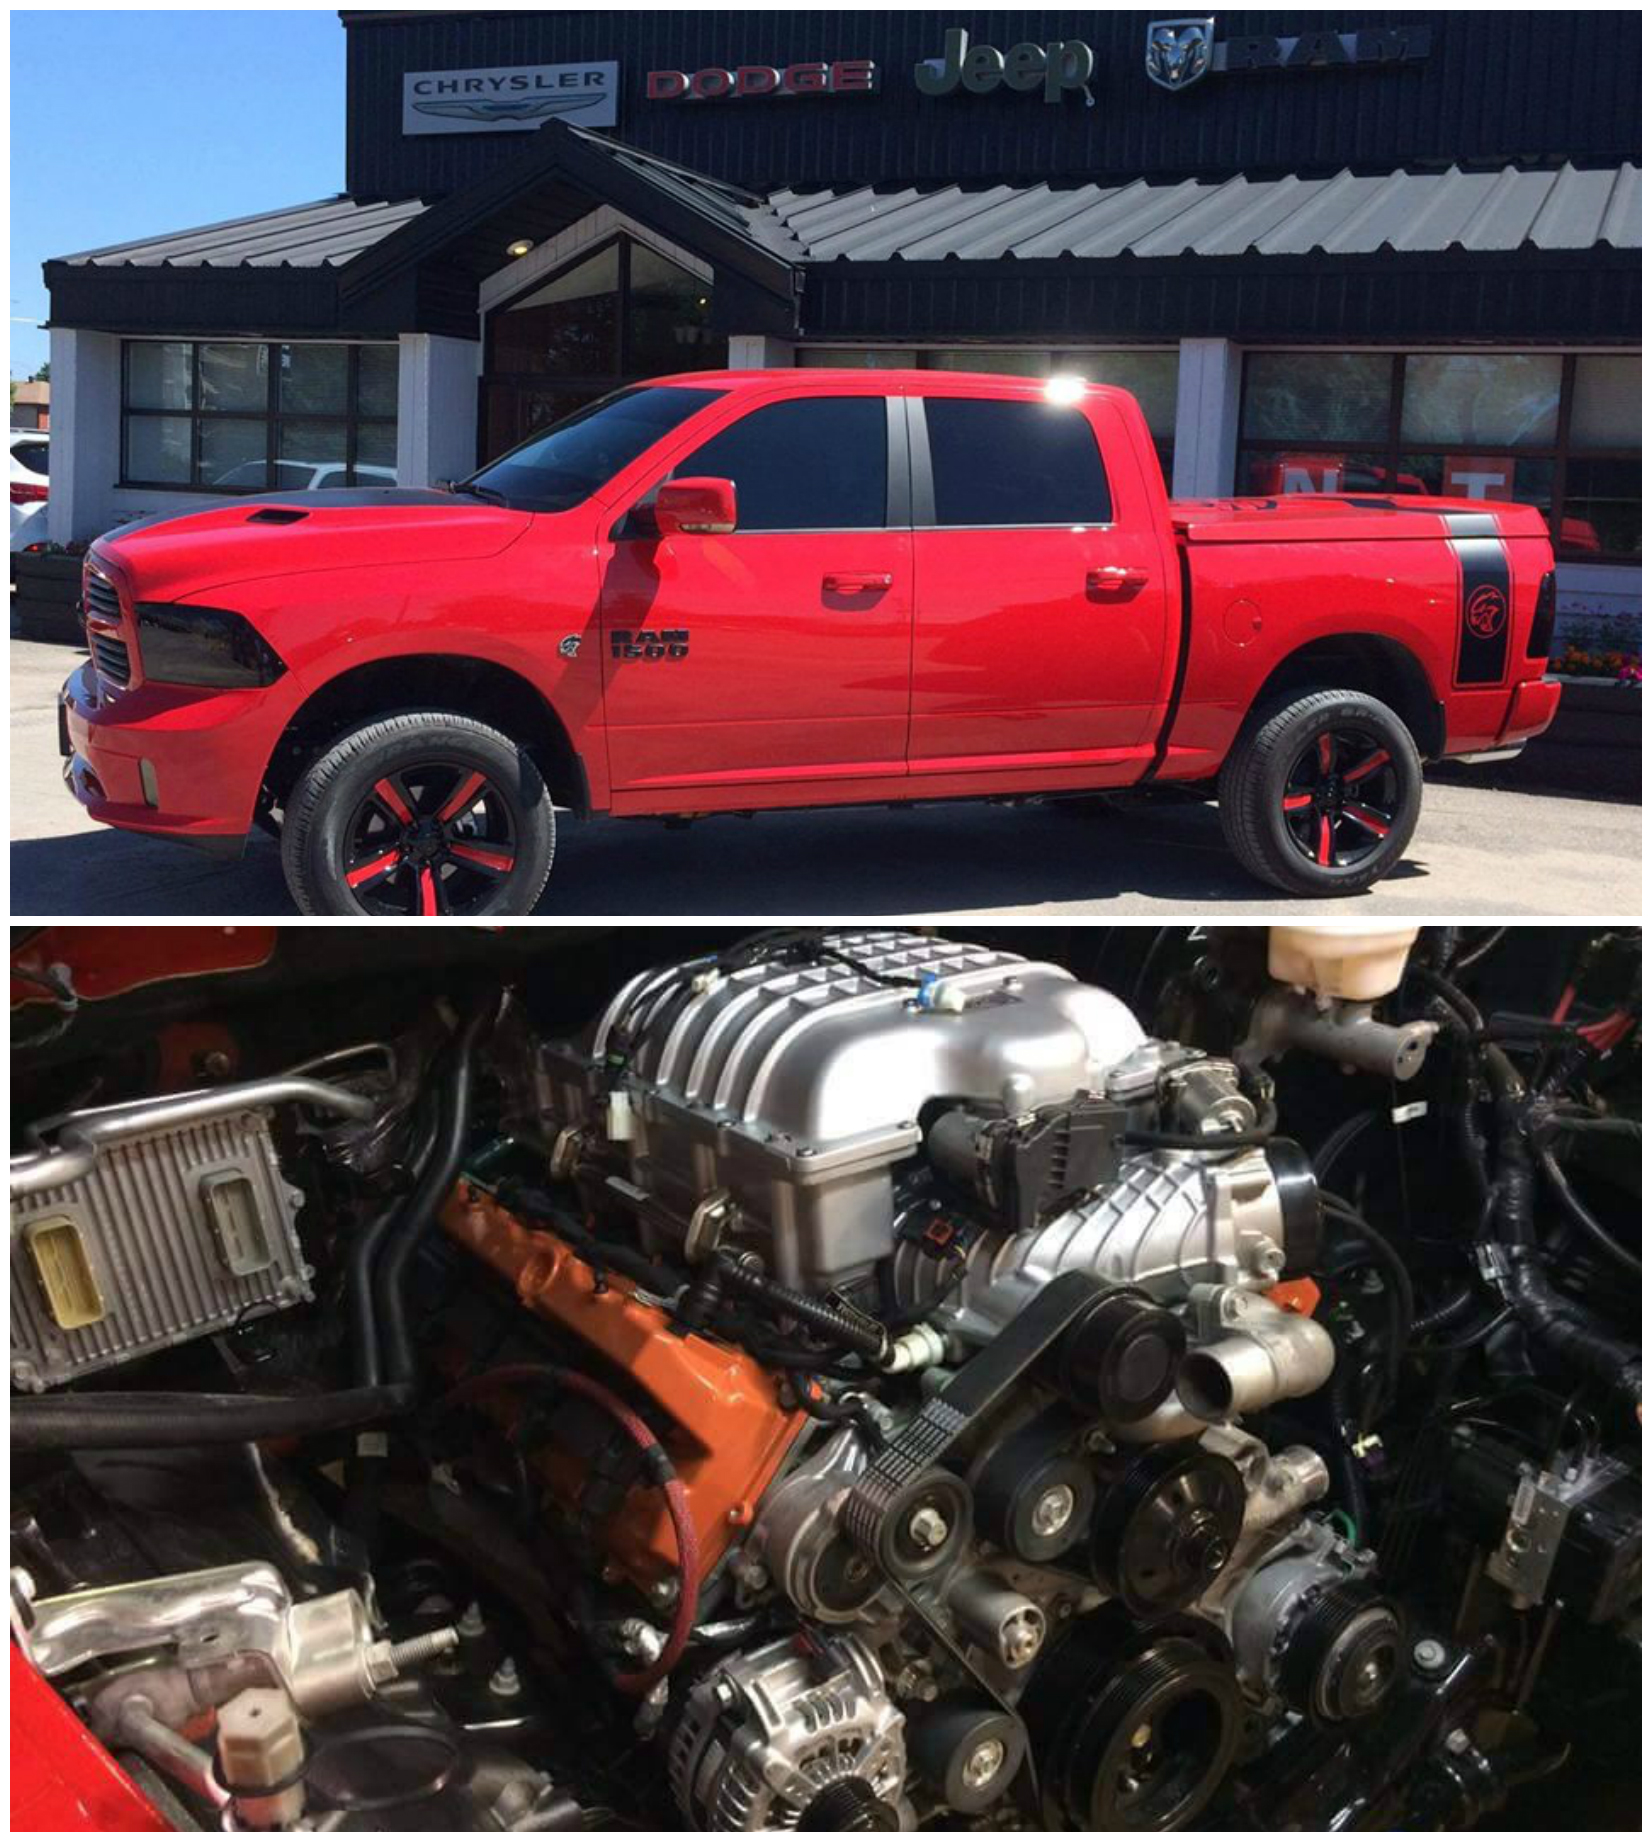 707 HP Hellcat-Powered 2016 Ram 1500 Built in Canada Becomes